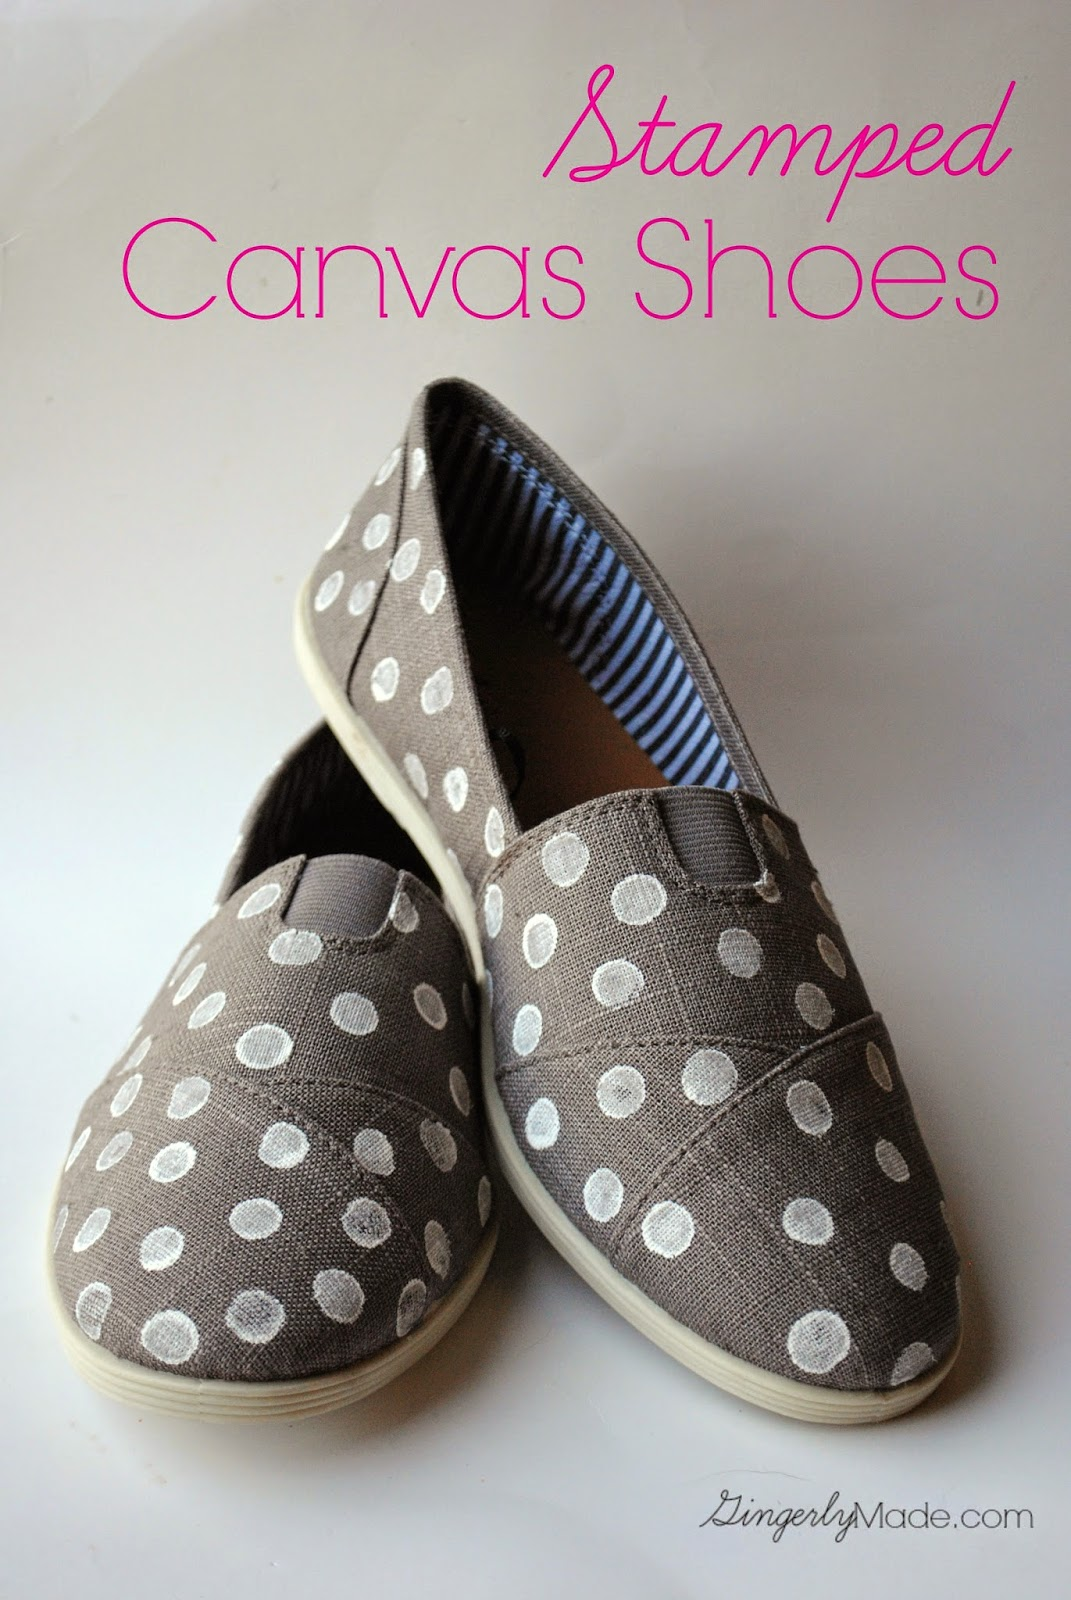 Stamped Canvas Shoes